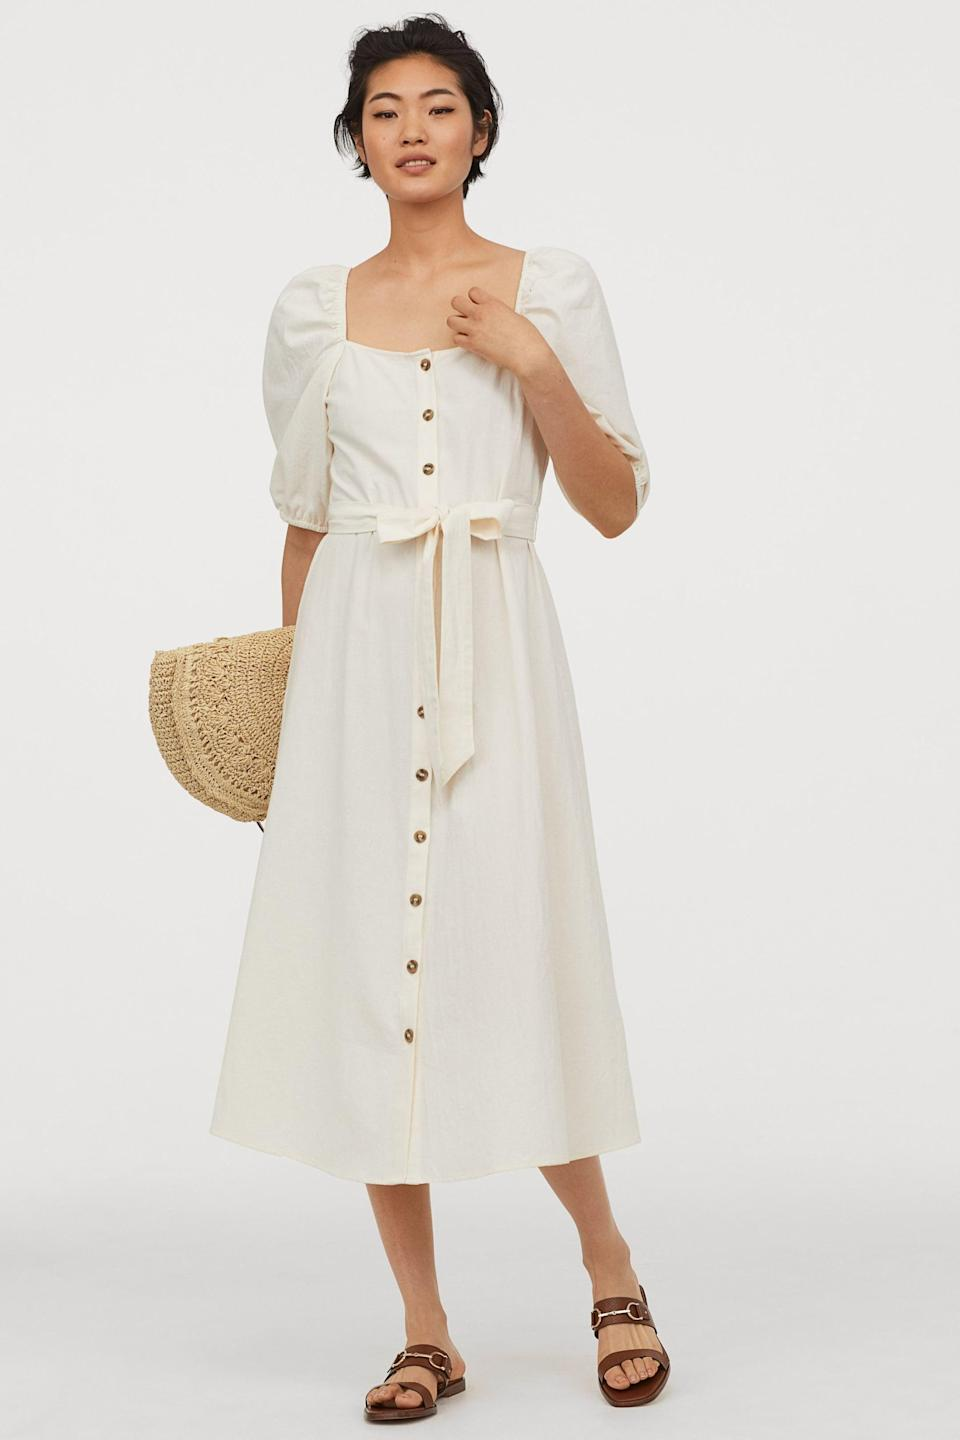 """<p>This <a href=""""https://www.popsugar.com/buy/HampM-Creped-Cotton-Dress-552274?p_name=H%26amp%3BM%20Creped%20Cotton%20Dress&retailer=www2.hm.com&pid=552274&price=35&evar1=fab%3Aus&evar9=44705274&evar98=https%3A%2F%2Fwww.popsugar.com%2Ffashion%2Fphoto-gallery%2F44705274%2Fimage%2F47271379%2FHM-Creped-Cotton-Dress&list1=shopping%2Ctravel%2Cfall%20fashion%2Cdresses%2Cfall%2Cday%20dresses%2Ctravel%20style%2Cspring%20fashion%2Csummer%20fashion&prop13=api&pdata=1"""" class=""""link rapid-noclick-resp"""" rel=""""nofollow noopener"""" target=""""_blank"""" data-ylk=""""slk:H&amp;M Creped Cotton Dress"""">H&amp;M Creped Cotton Dress </a> ($35) doesn't wrinkle, so it's awesome for a suitcase.</p>"""